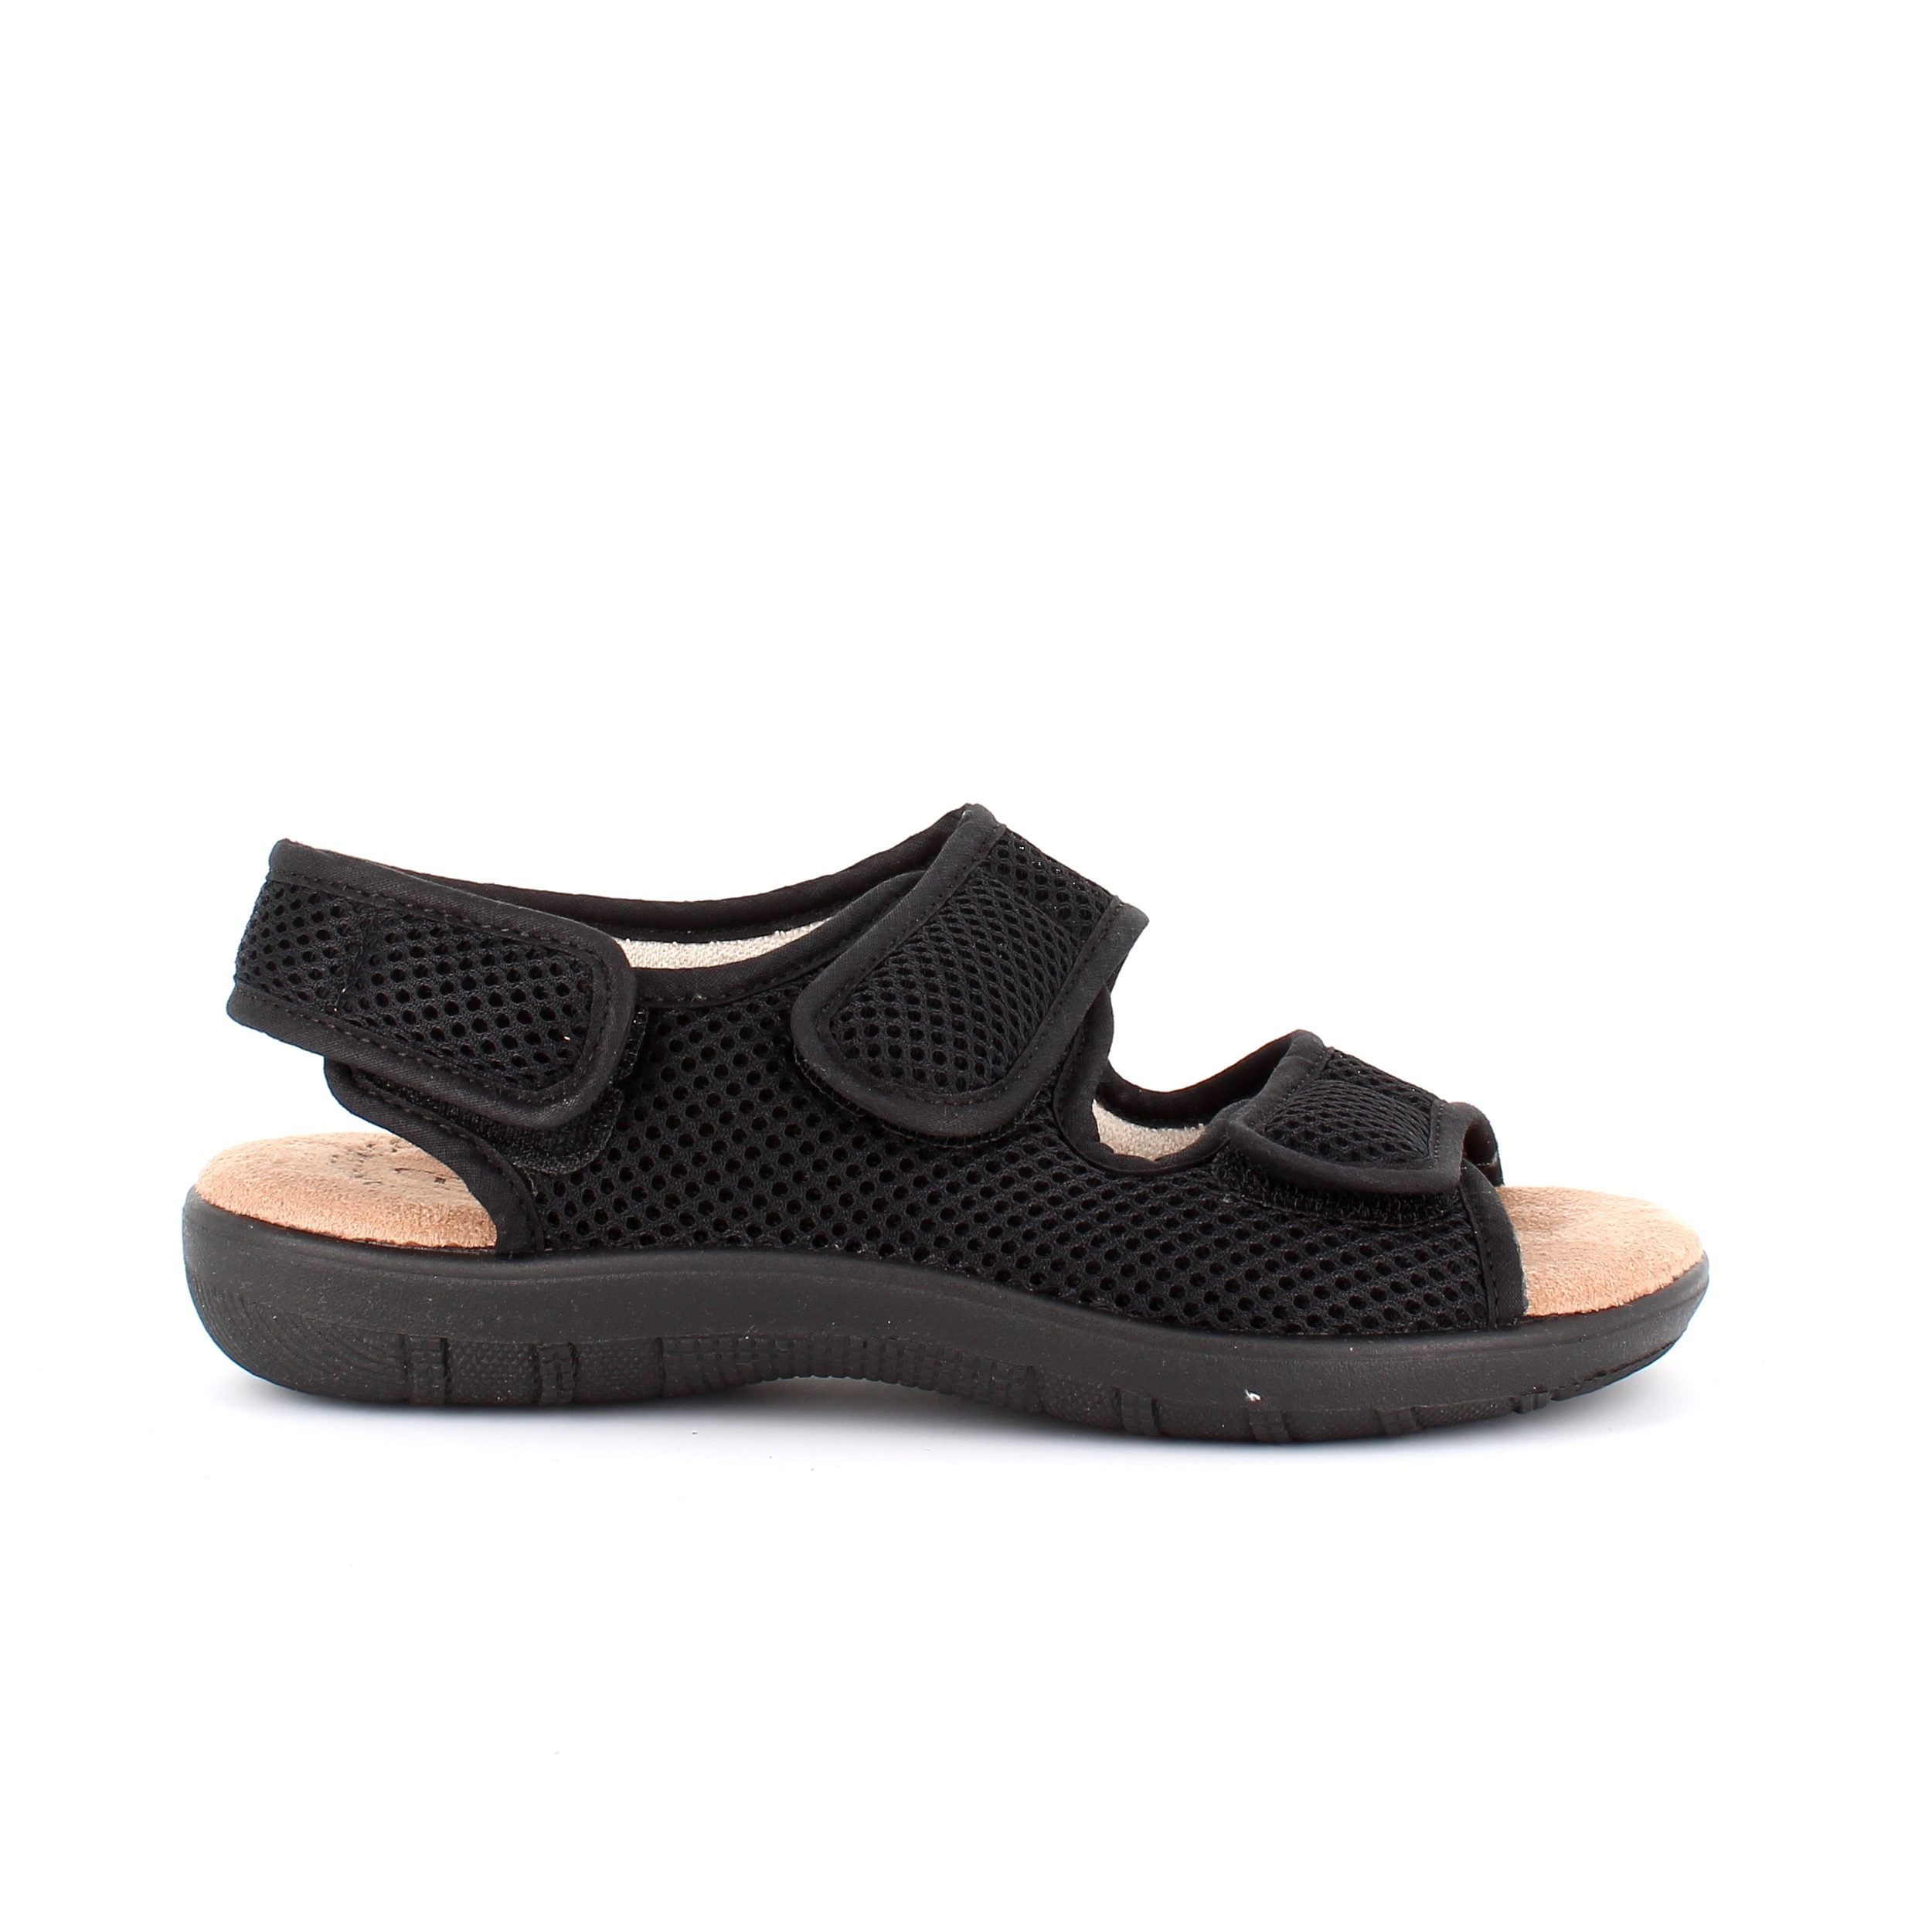 Image of   Anatomisk soft sandal - 40